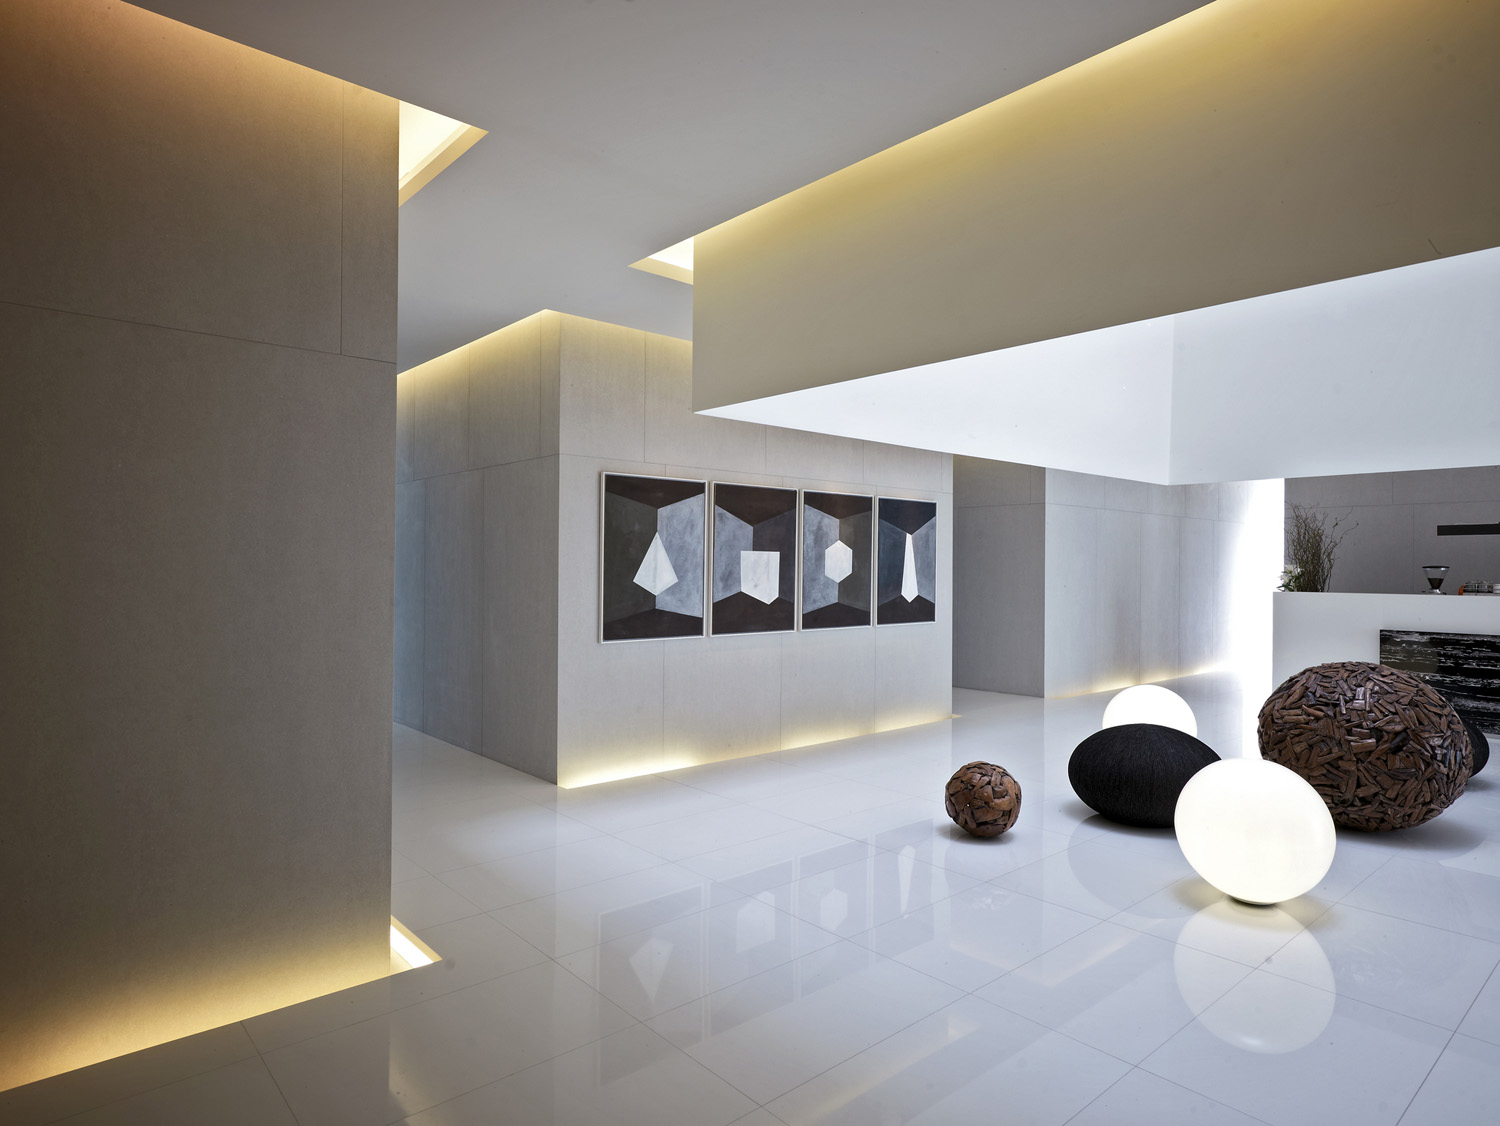 mm_Lightbox design by Hsuyuan Kuo Architect & Associates_17